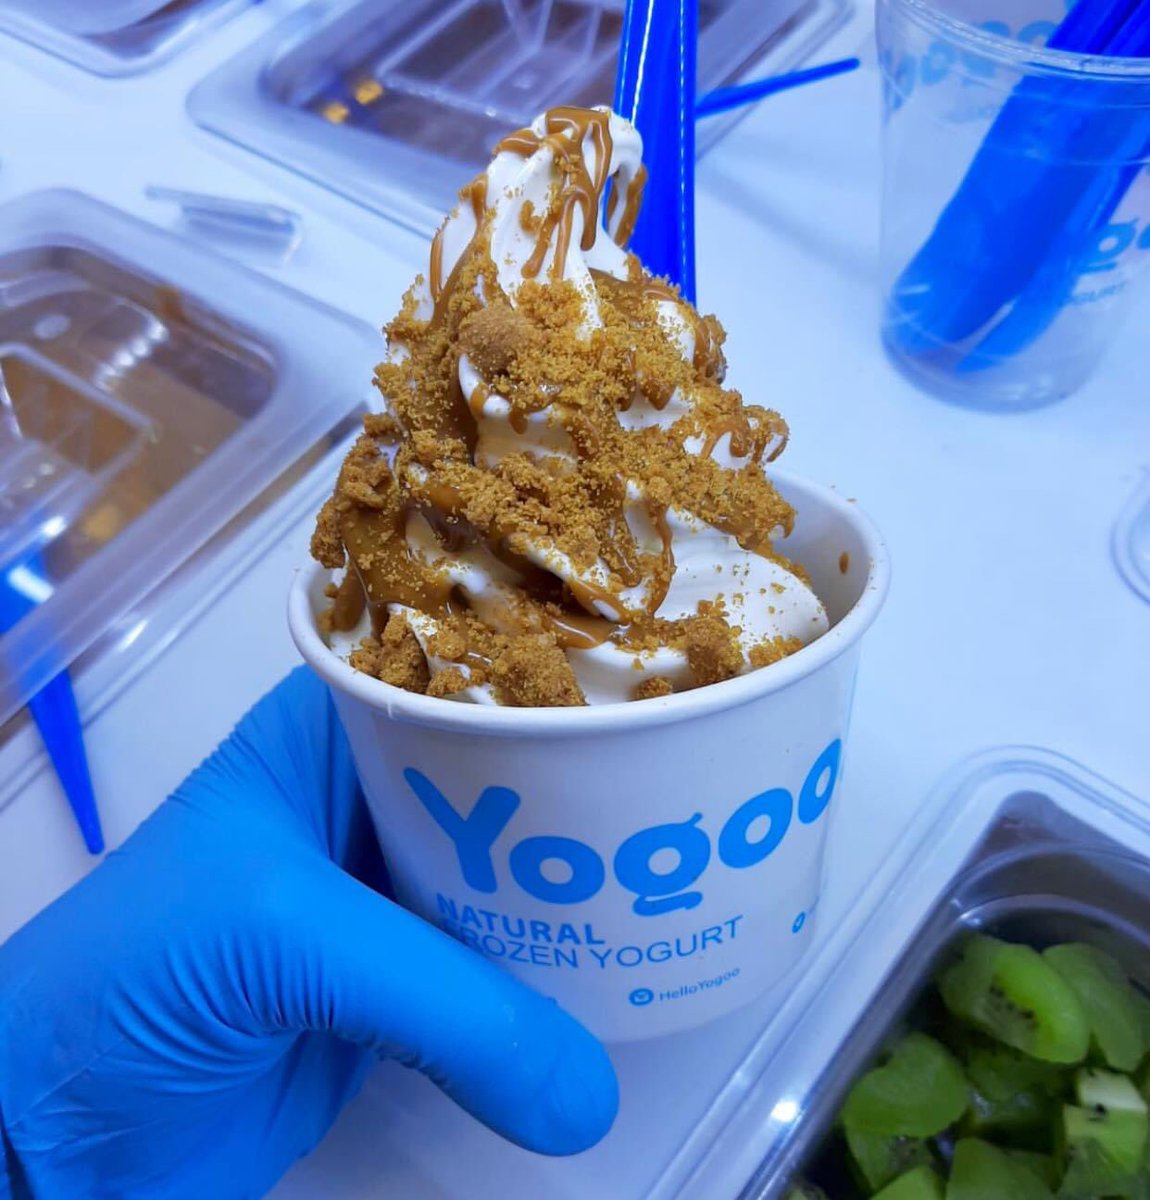 Have your favourite frozen yogurt with Biscoff spread and crunchy Biscoff biscuits 😀🙌   #helloyogoo #experienceyogoo #yogoo #YogTub #frozenyogurt #frozenyoghurt #froyo #london #woking #guildford #healthyfood #lifestyle #likeforlike #uk #yummy #tasty #delicious #sweet https://t.co/sypqrbBTJY